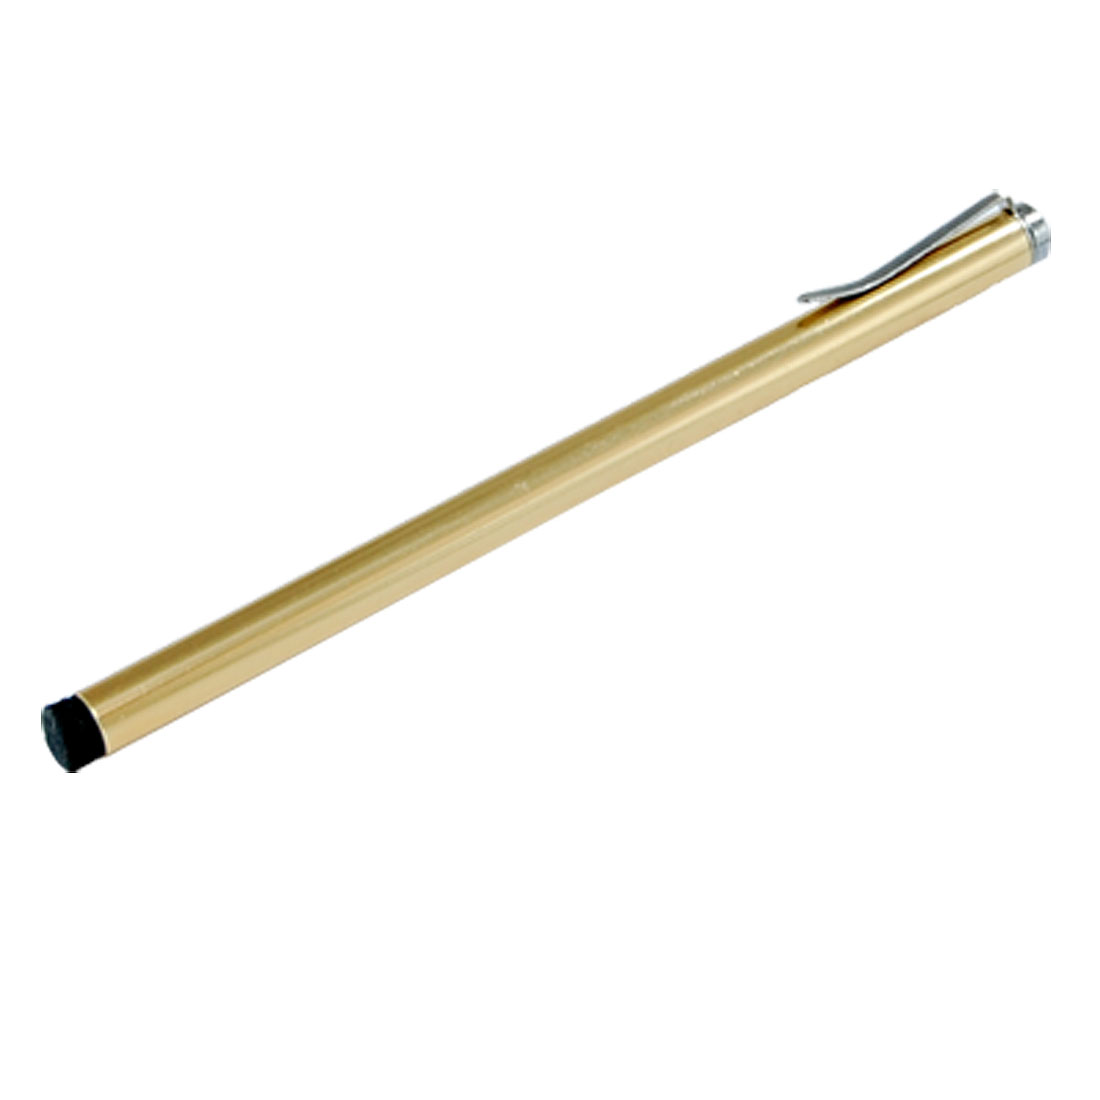 Alloy Body Touchpad Stylus Pen for Mobile Phone Gold Tone 2pcs